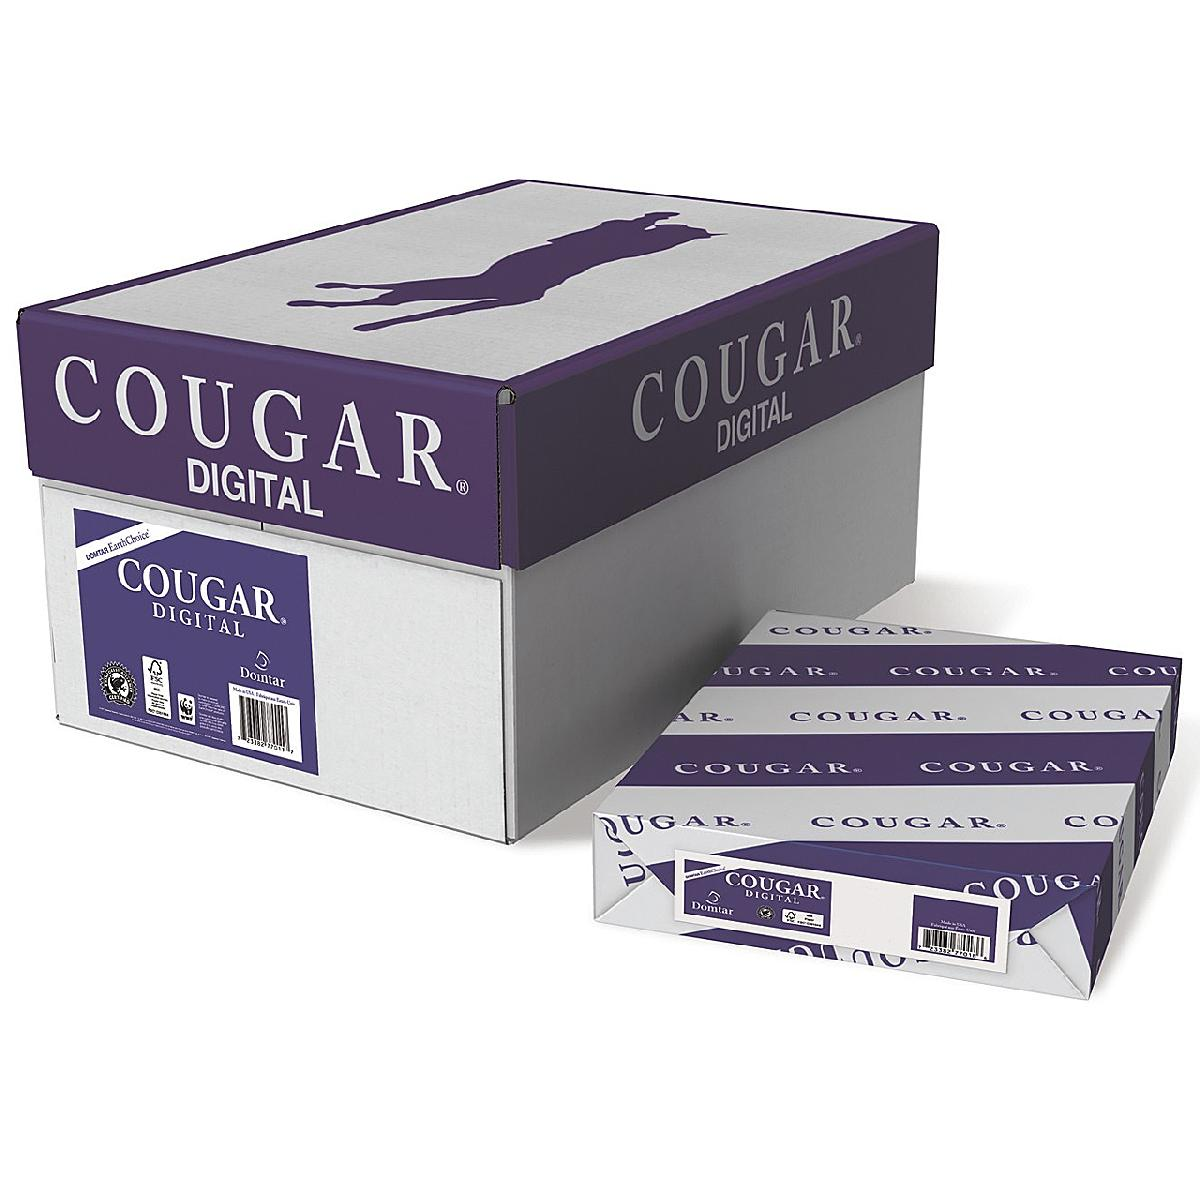 Domtar® Cougar Digital White Smooth 80 lb. Text 8.5x11 in. 250 Sheets per Ream - Sku: 2224 | 250 SHEETS PER REAM